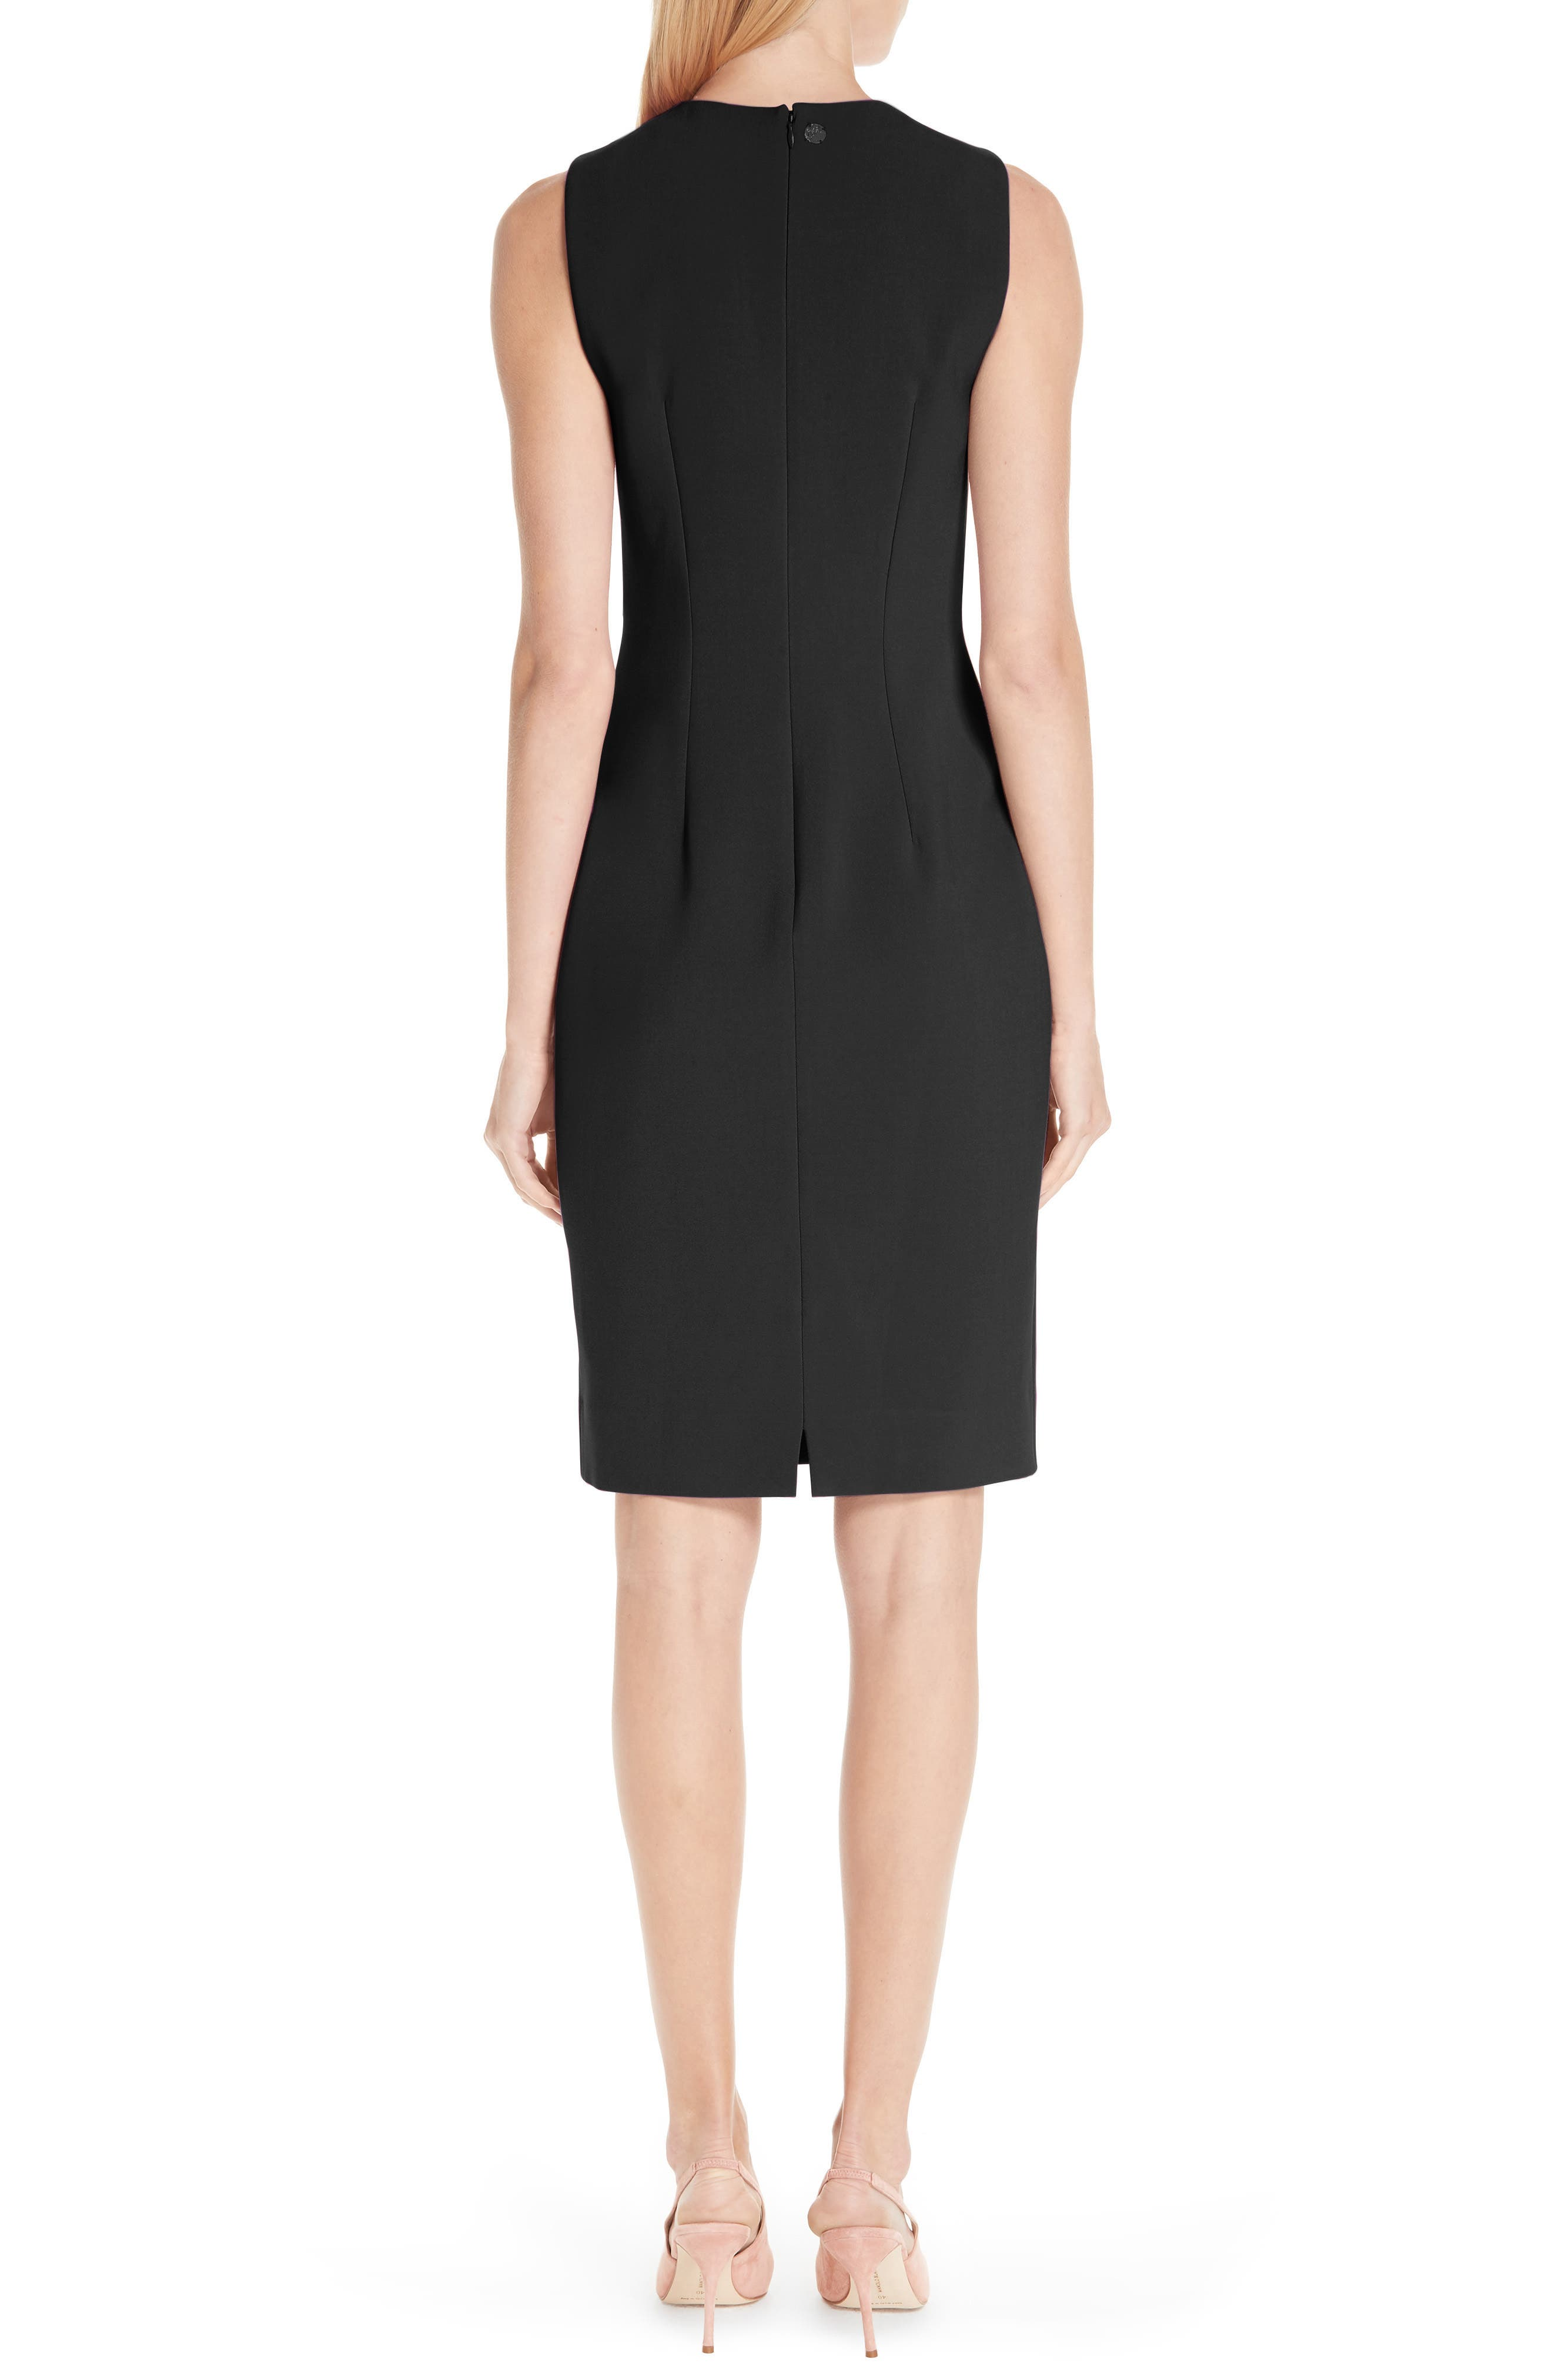 VERSACE COLLECTION, Stretch Cady Pencil Dress, Alternate thumbnail 2, color, 001